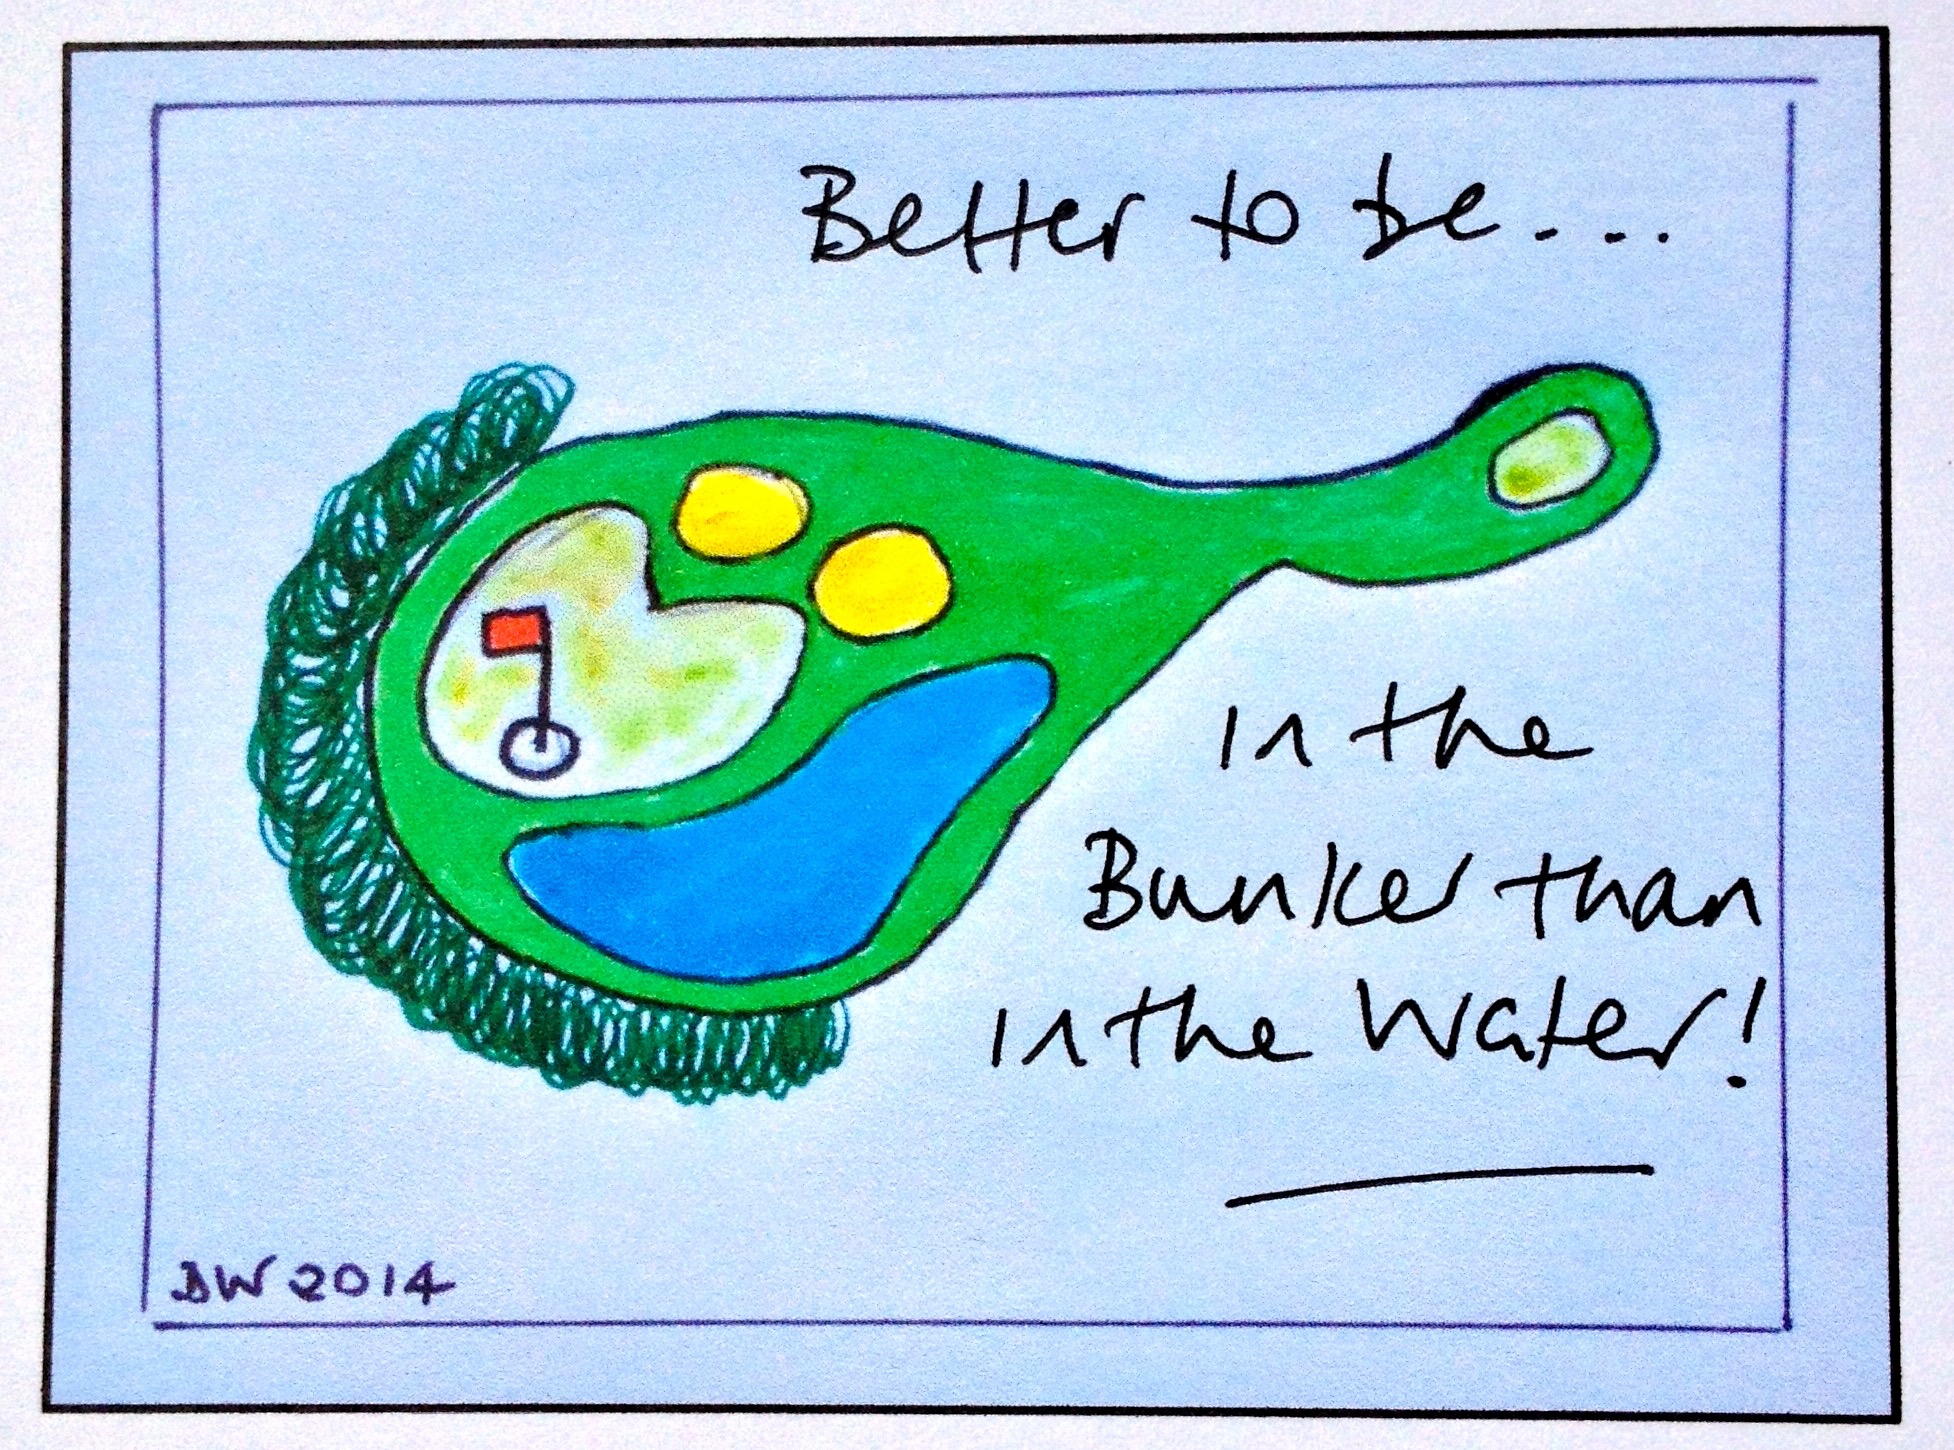 Better to be......